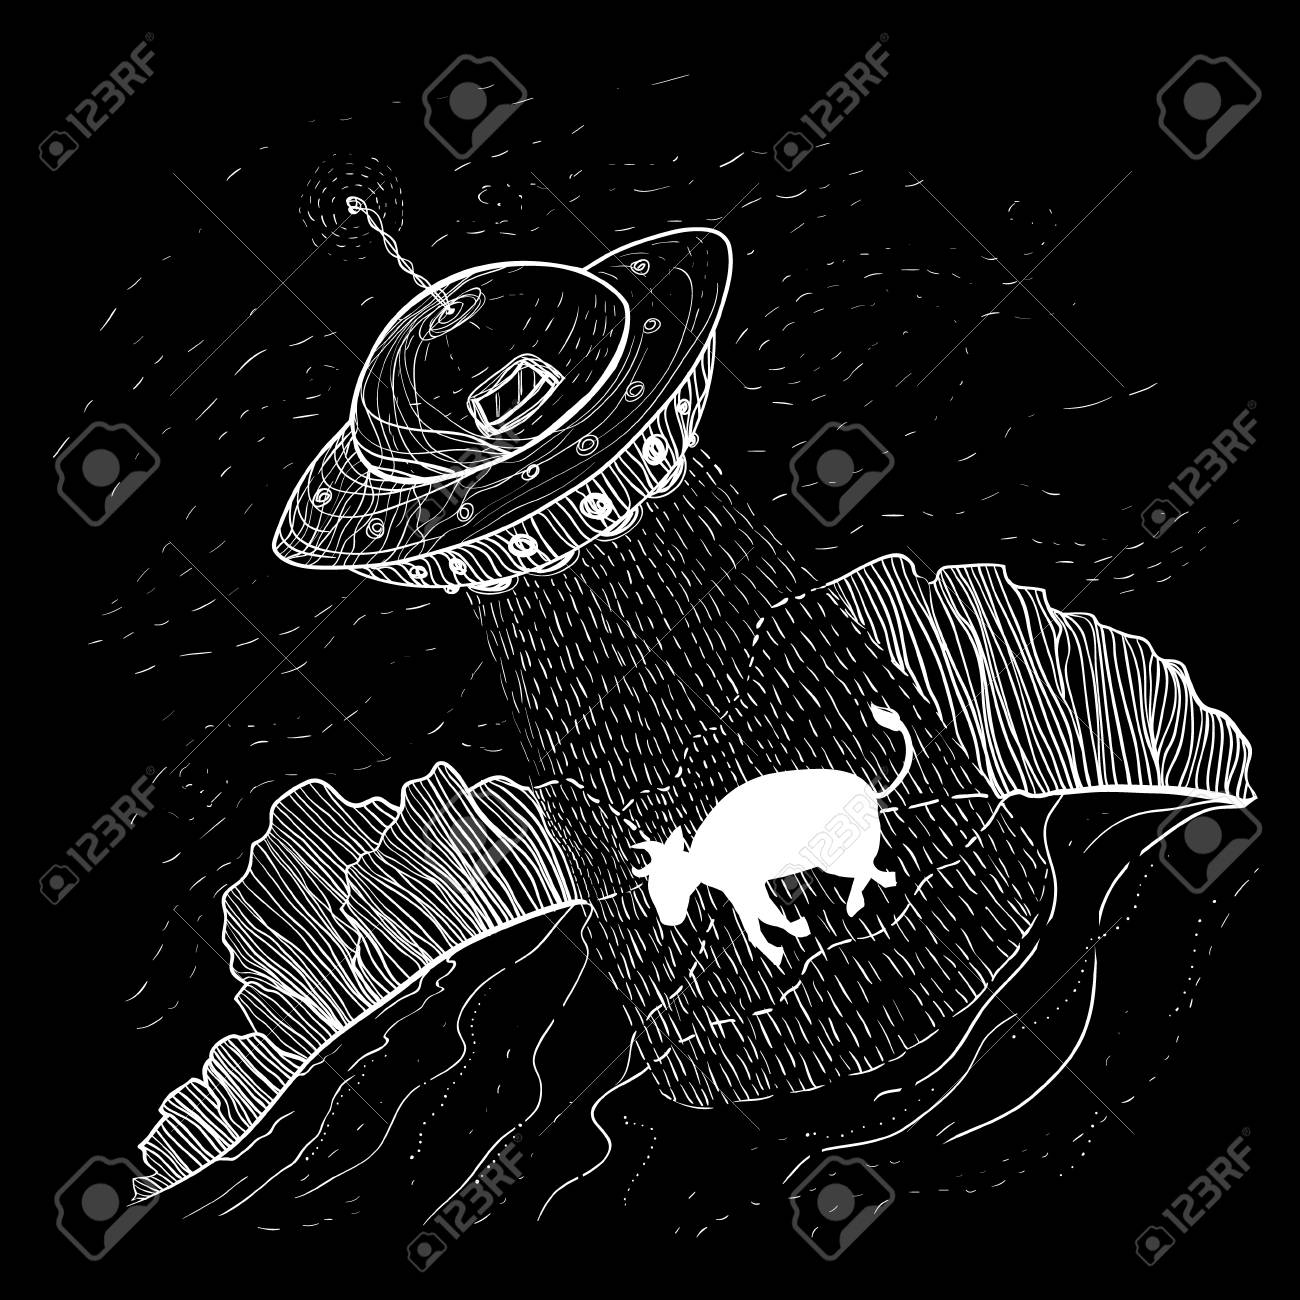 UFO aliens abducts cow template - 100901579